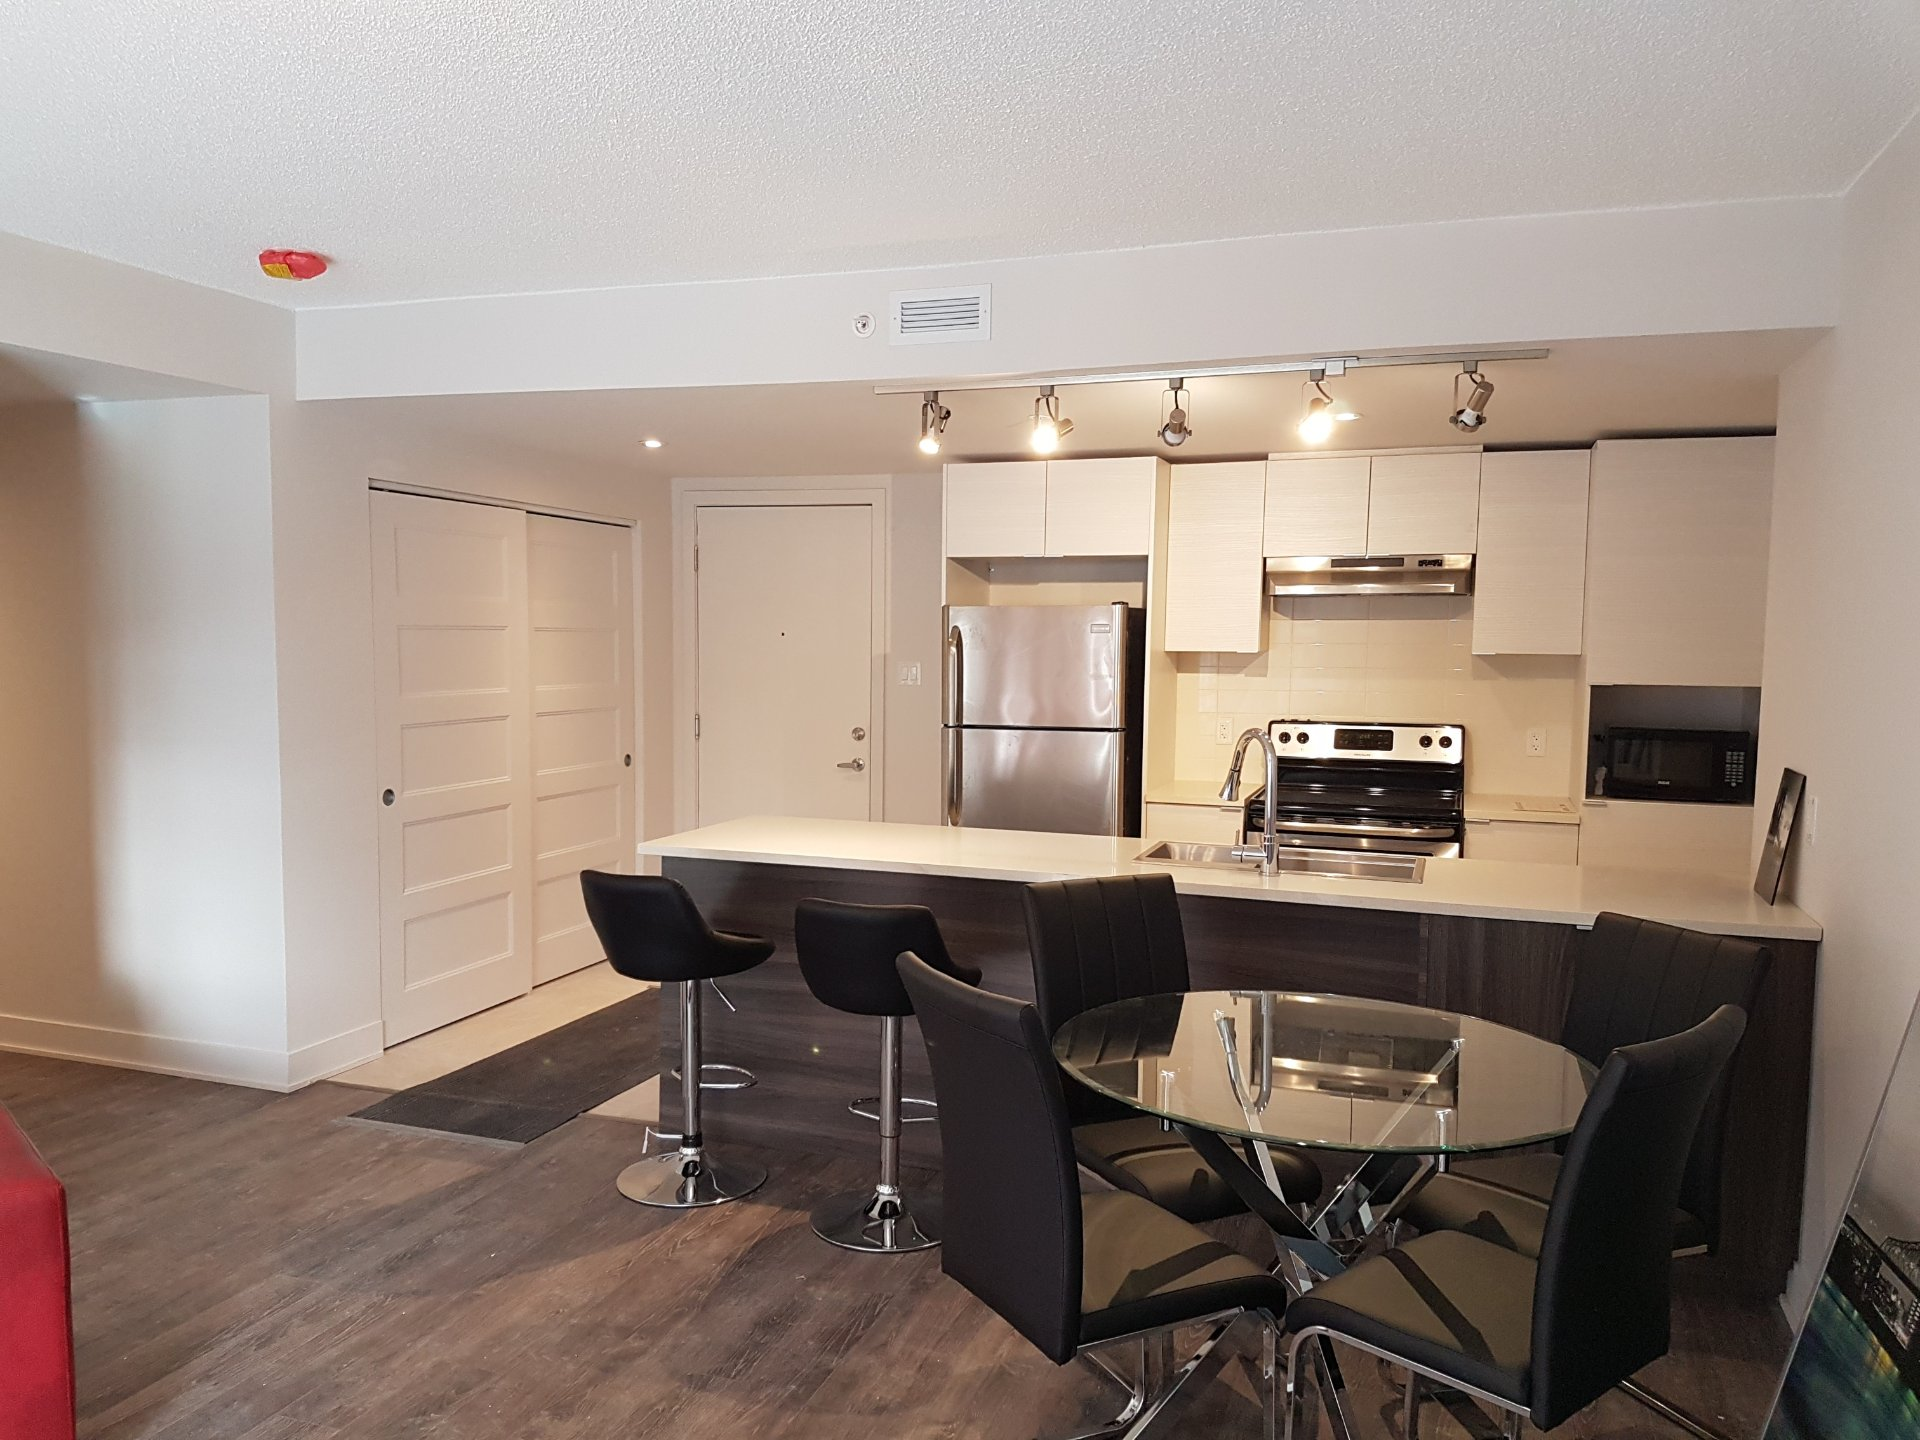 Condo for sale chomedey laval buy condo chomedey laval salon salle manger salle manger solutioingenieria Images